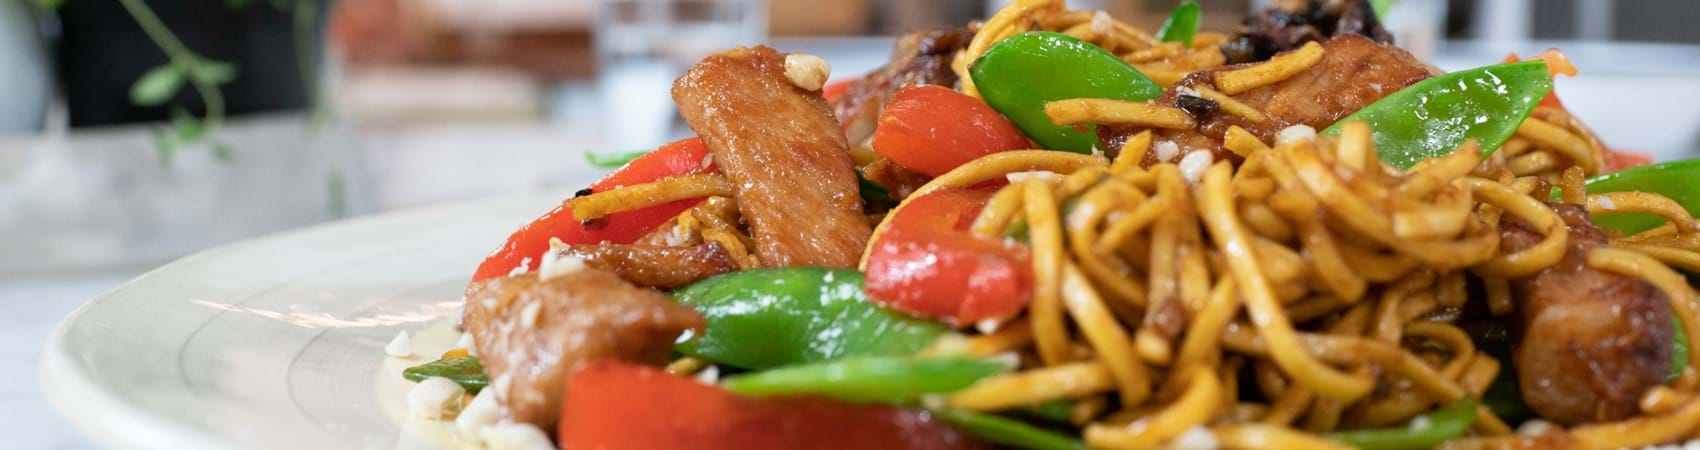 Speedy Stir-Fry Pork Noodles